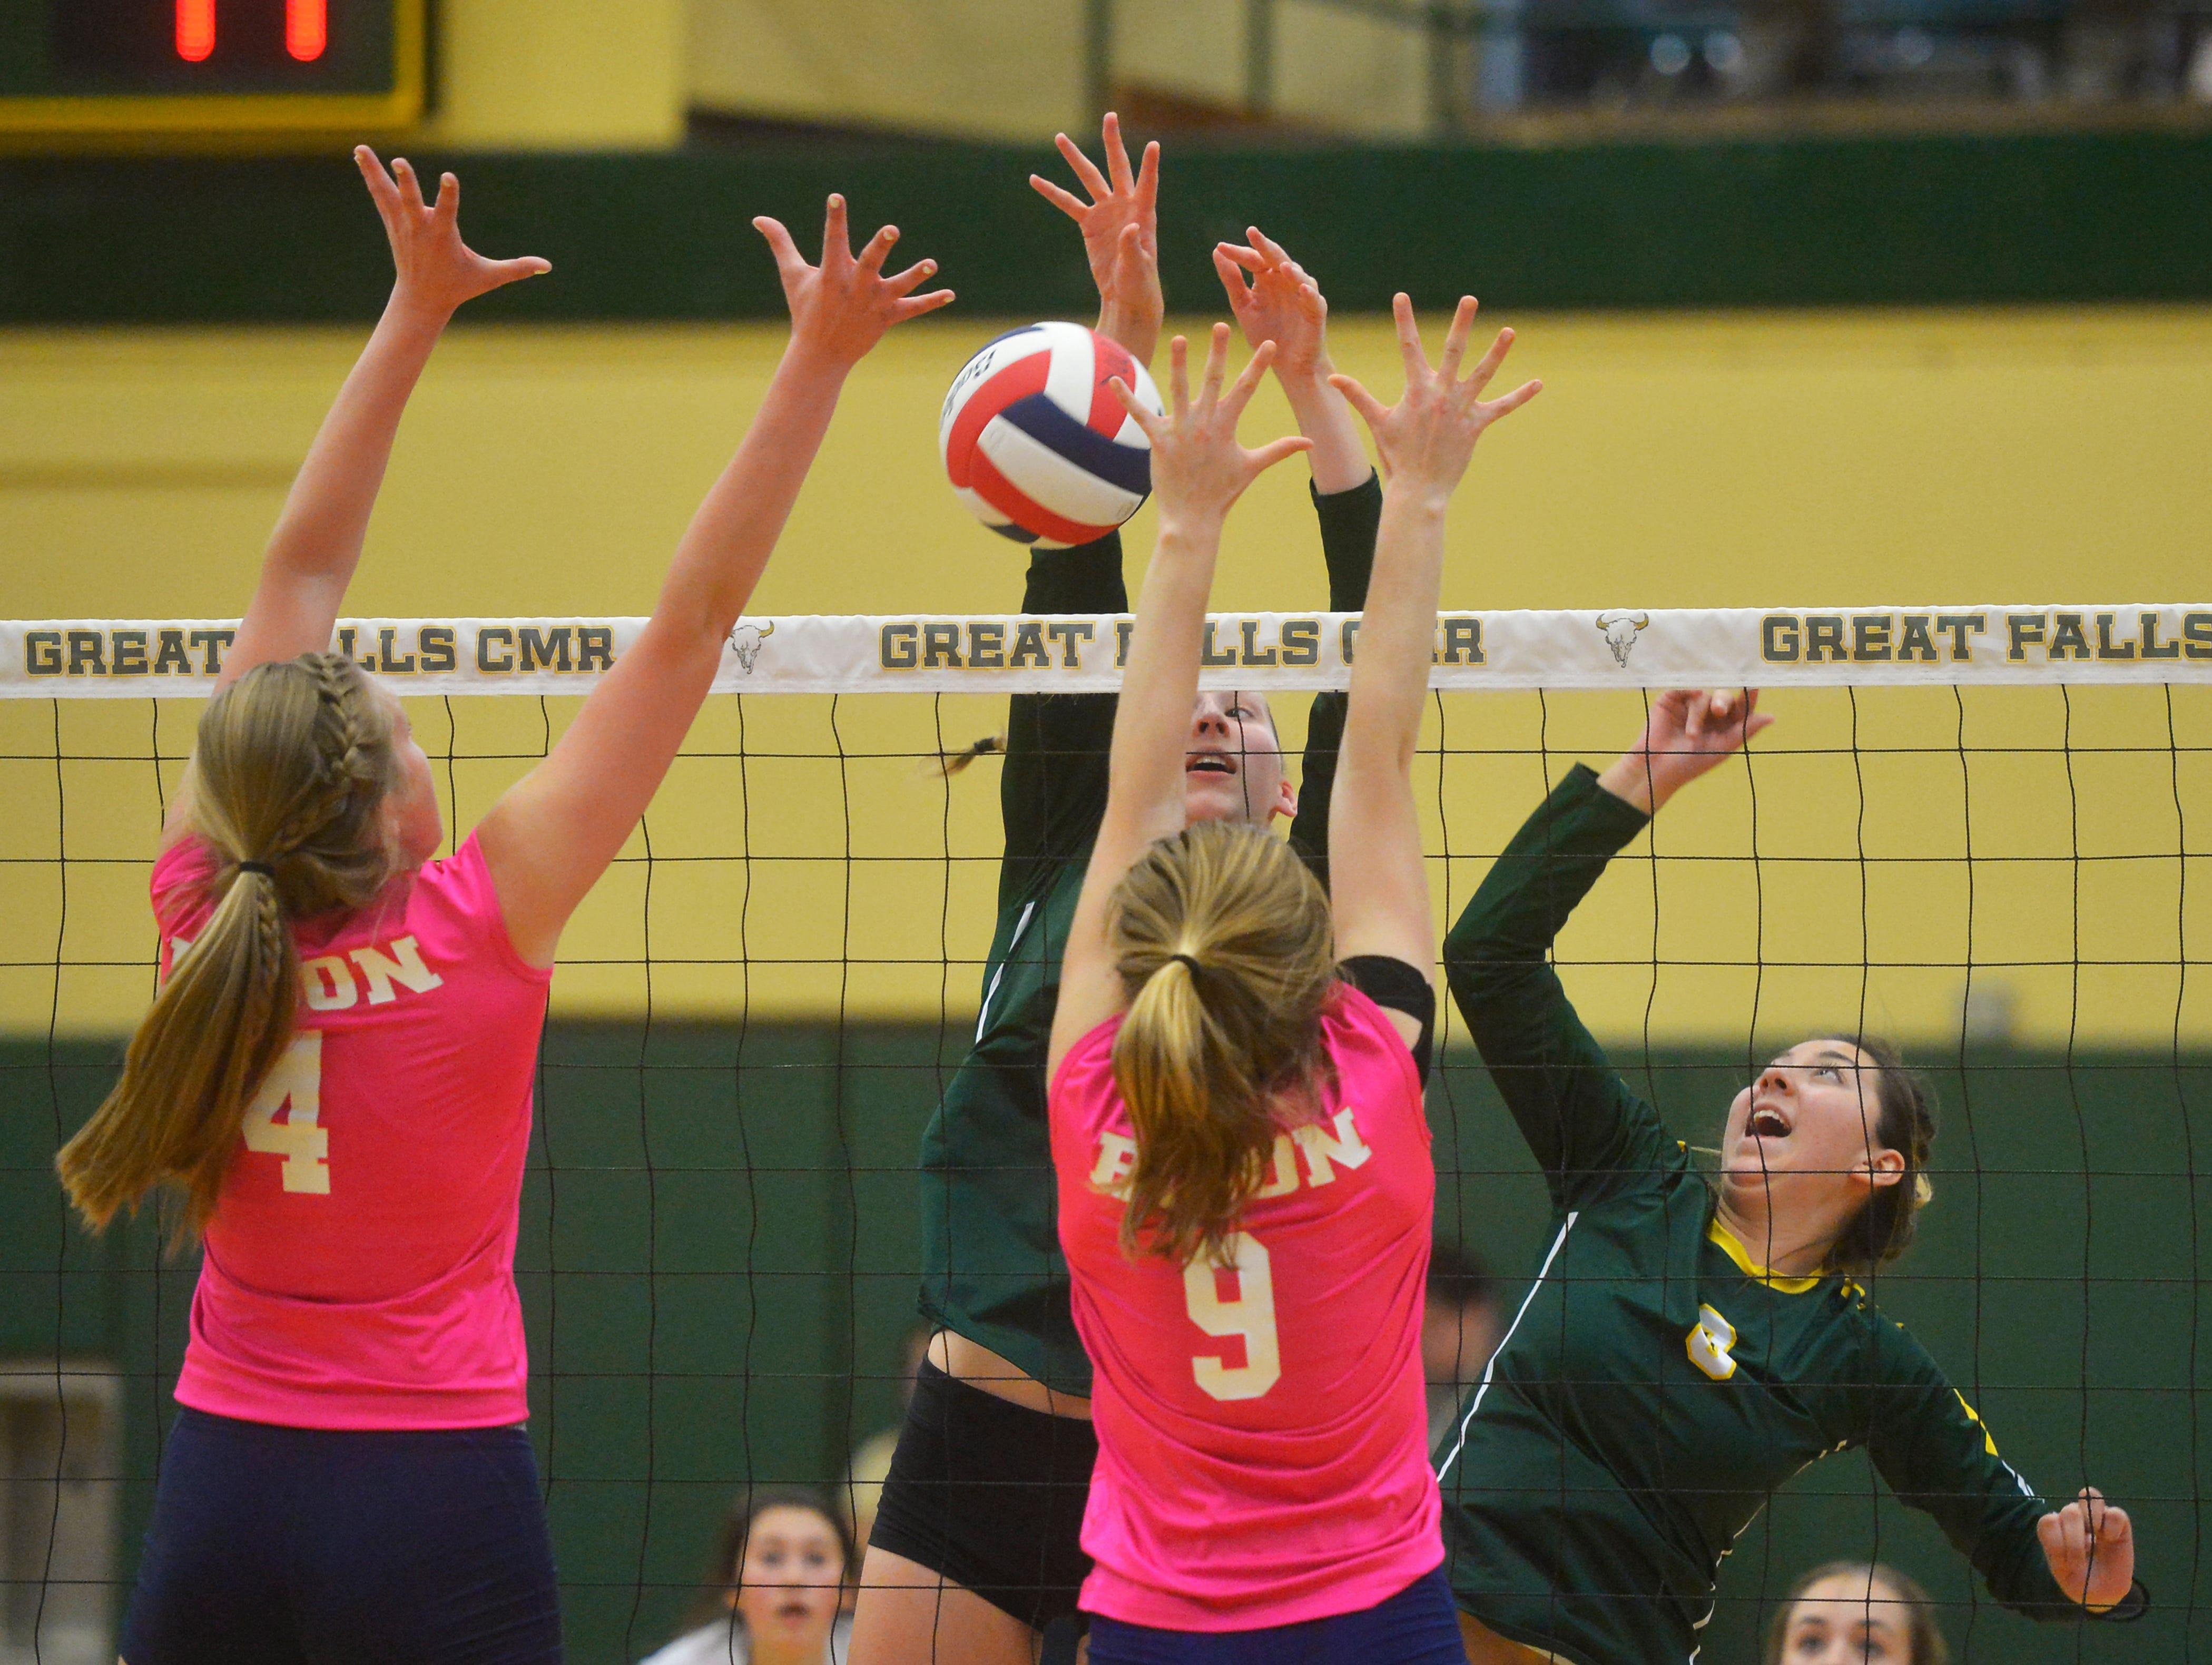 CMR's Allie Olsen and Alexis Gonzales battle at the net with Great Falls High's Abbie Groskreutz, 4, and Malena Bruskotter, 9, during the crosstown volleyball match in the CMR Fieldhouse, Tuesday.